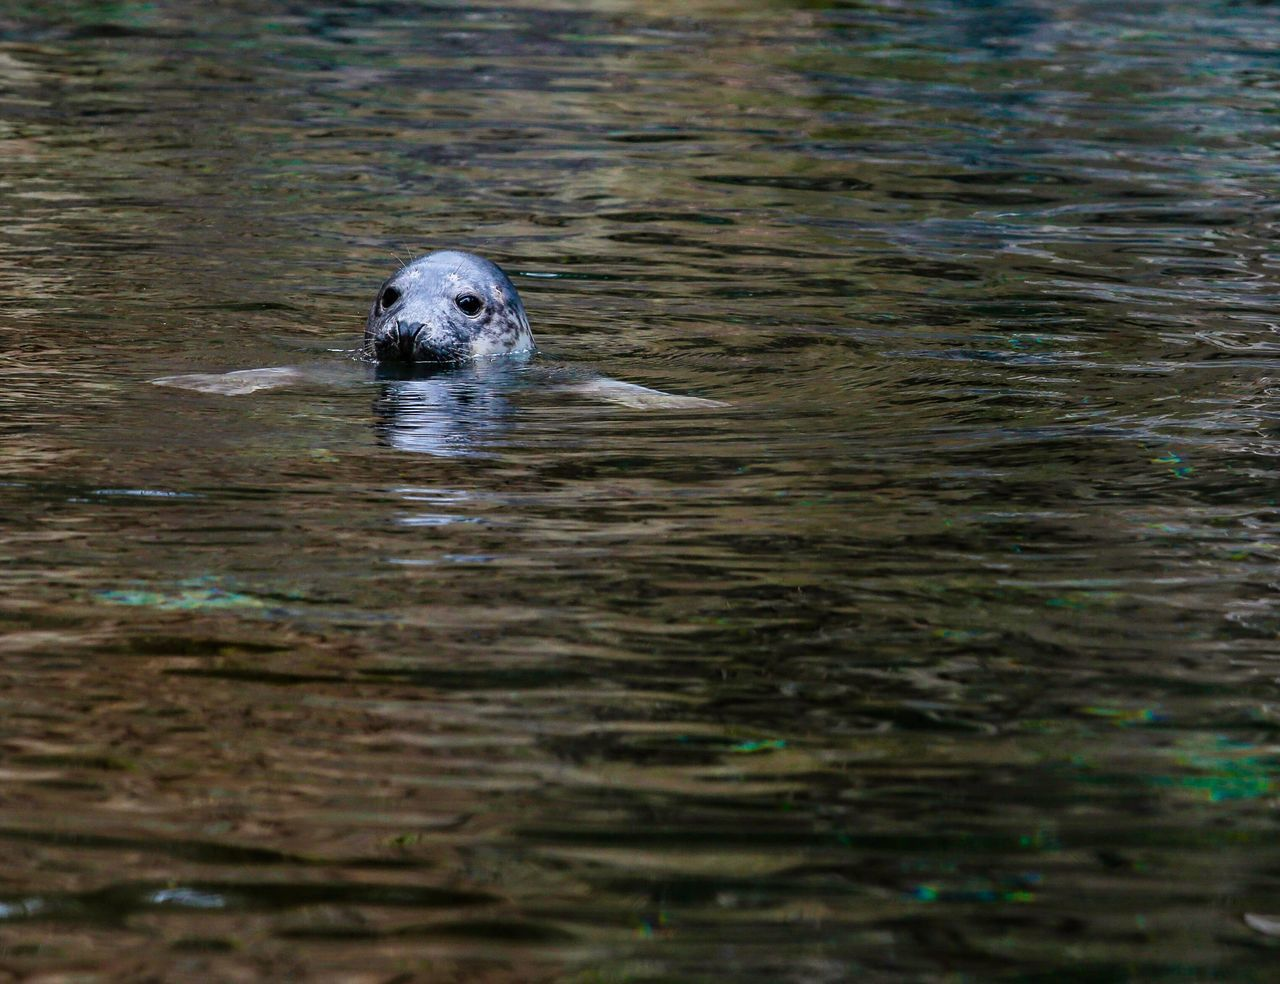 Waterfront Water One Animal Swimming Animal Themes Animals In The Wild Nature Day Outdoors Mammal No People Nature Low Angle View JGLowe Seal Sealife Curious Curiosity